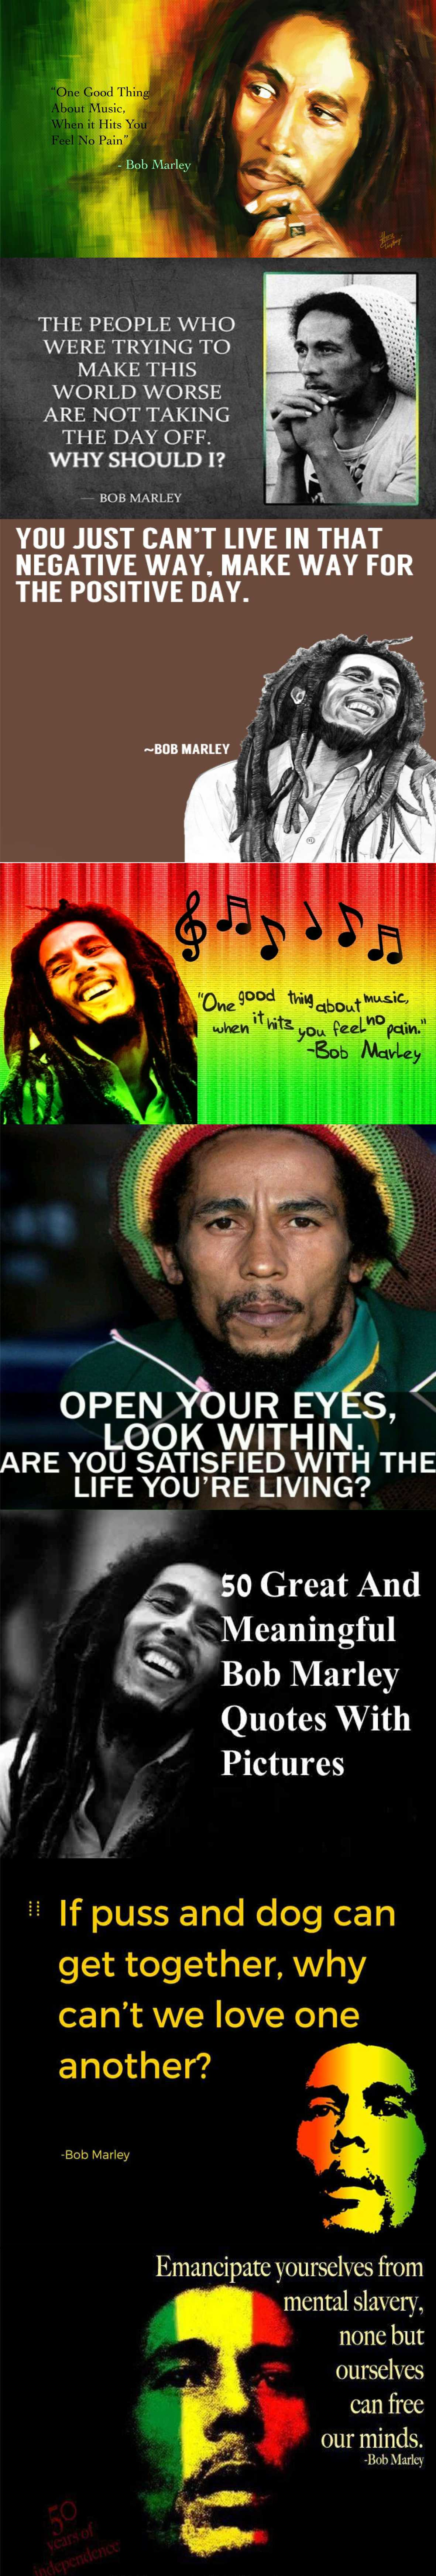 Best Bob marley quotes 2018